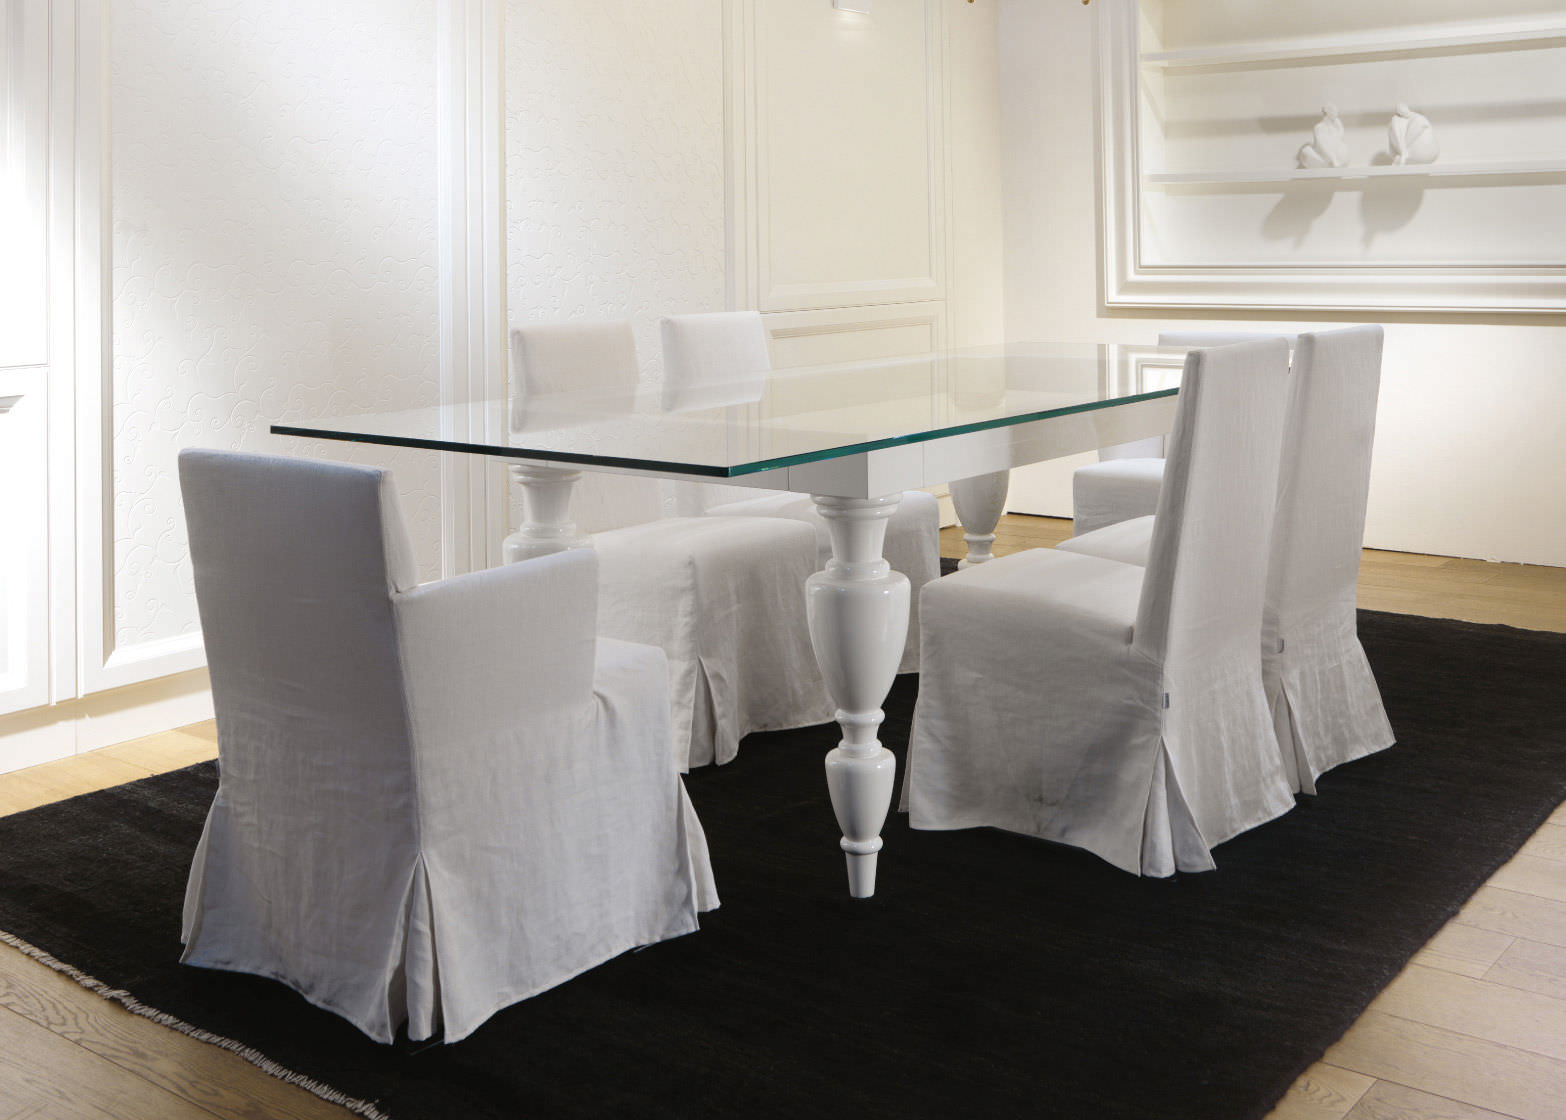 Tavolo Rettangolare In Vetro.Contemporary Table Glass Rectangular Castagna Cucine